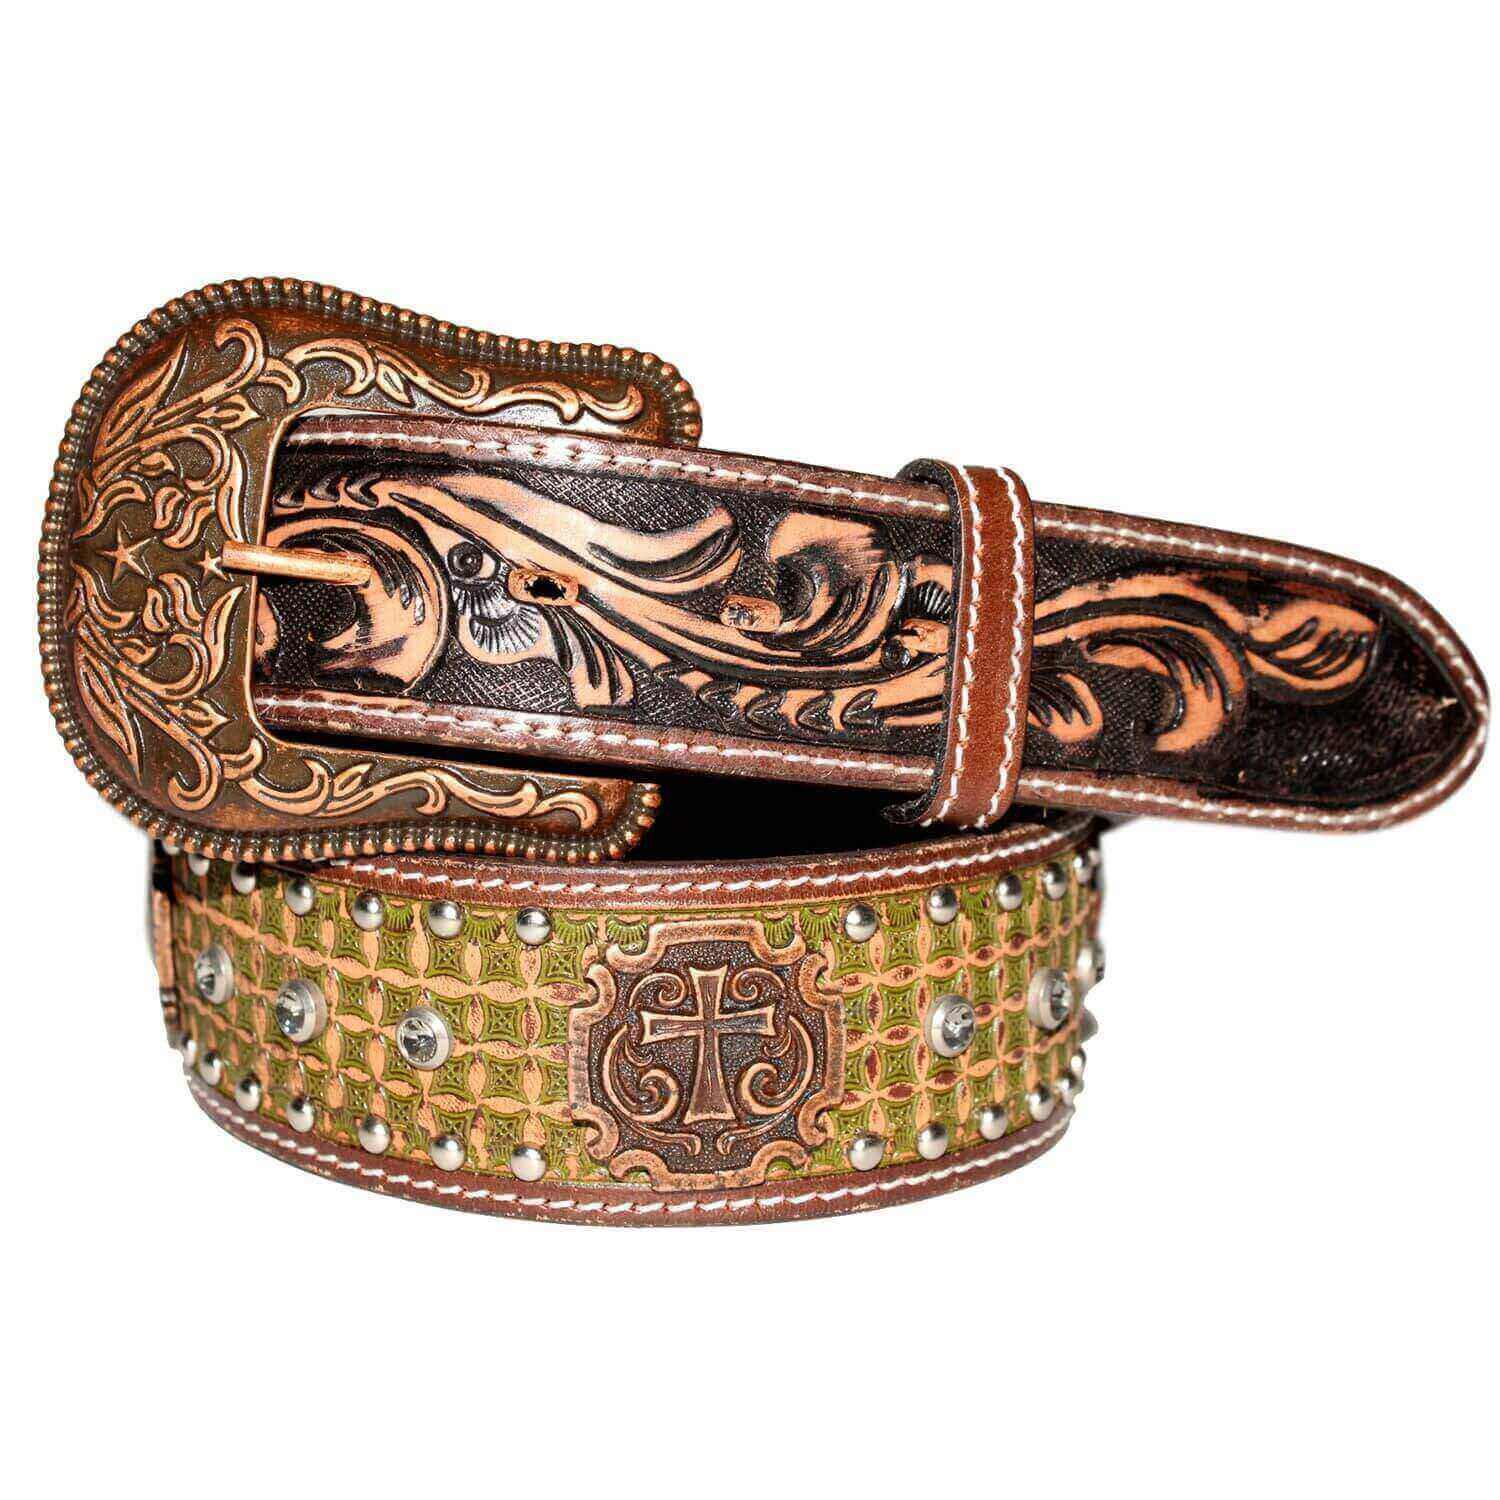 Cinto Fruta Cor 7102 Arizona Belts - Arena Country Echaporã 281b96e4984